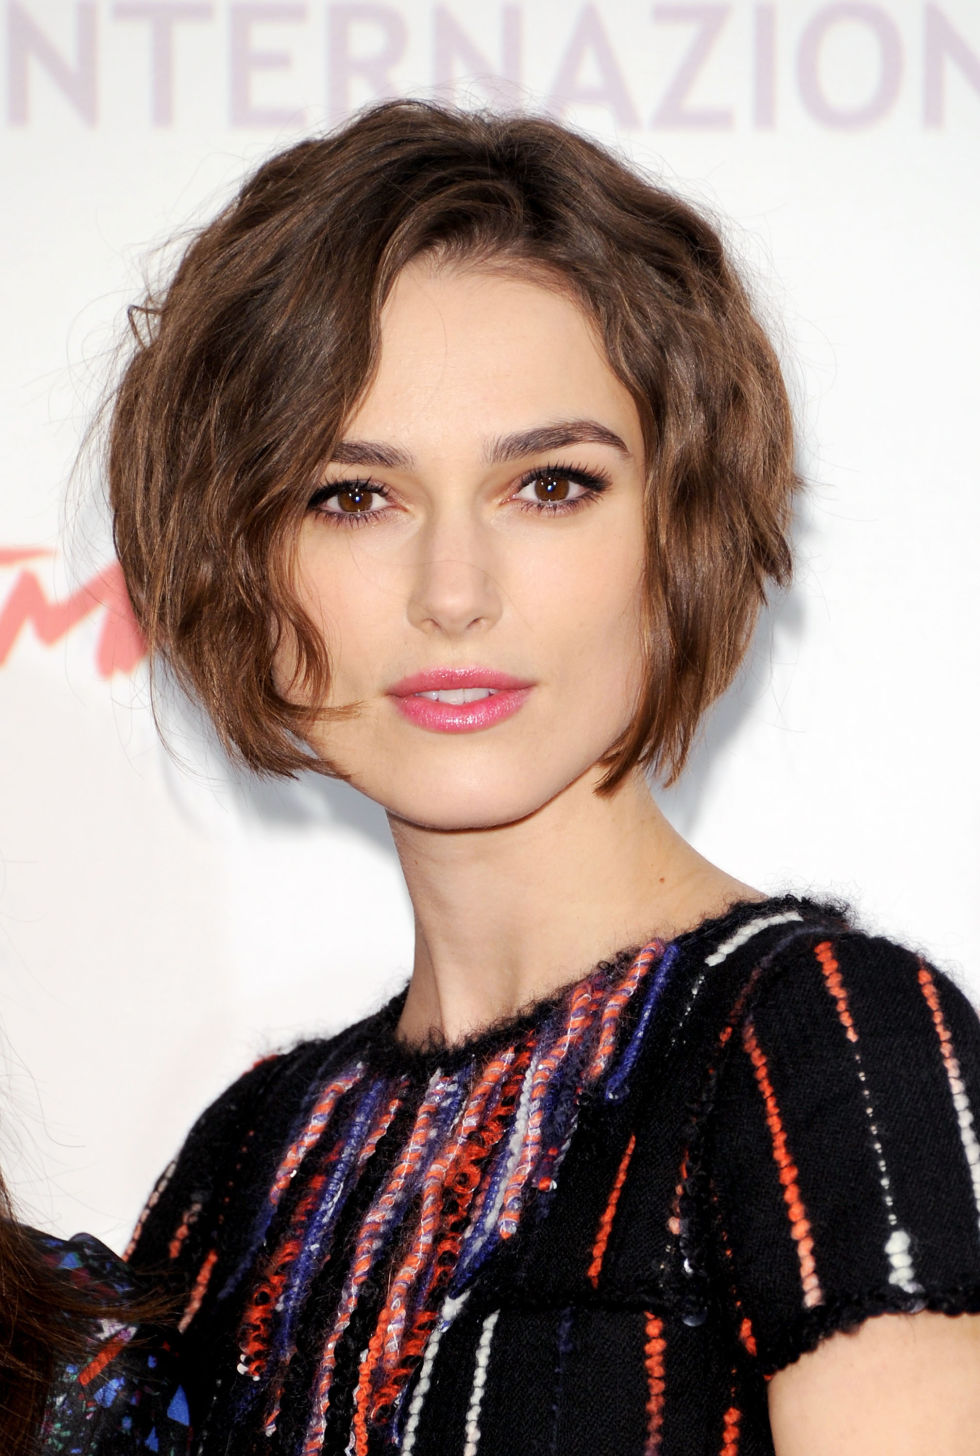 Groovy Best Layered Haircuts Hairstyles Amp Trends For 2017 Short Hairstyles Gunalazisus